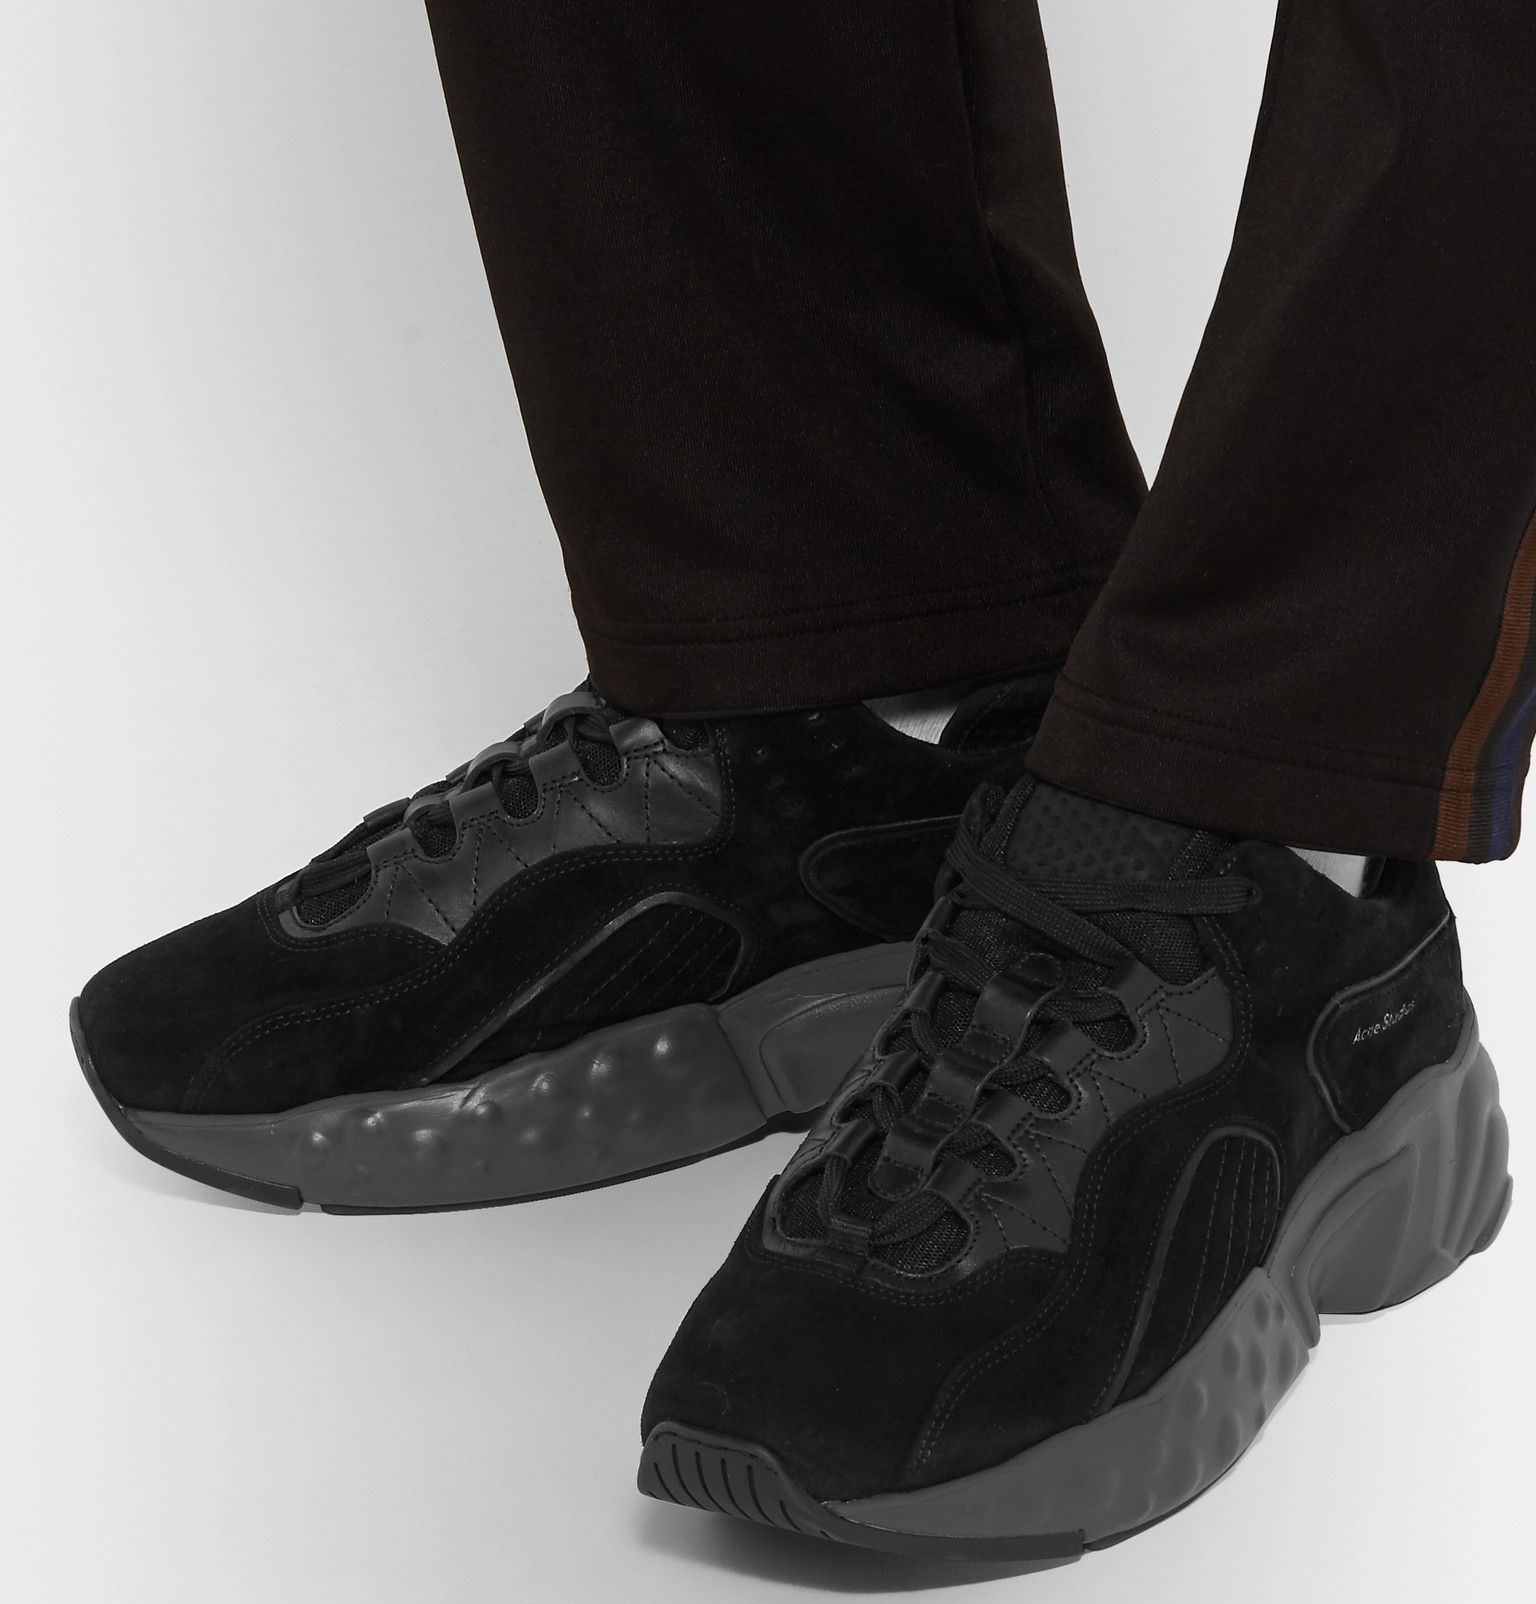 Black Suede, Leather and Mesh Sneakers